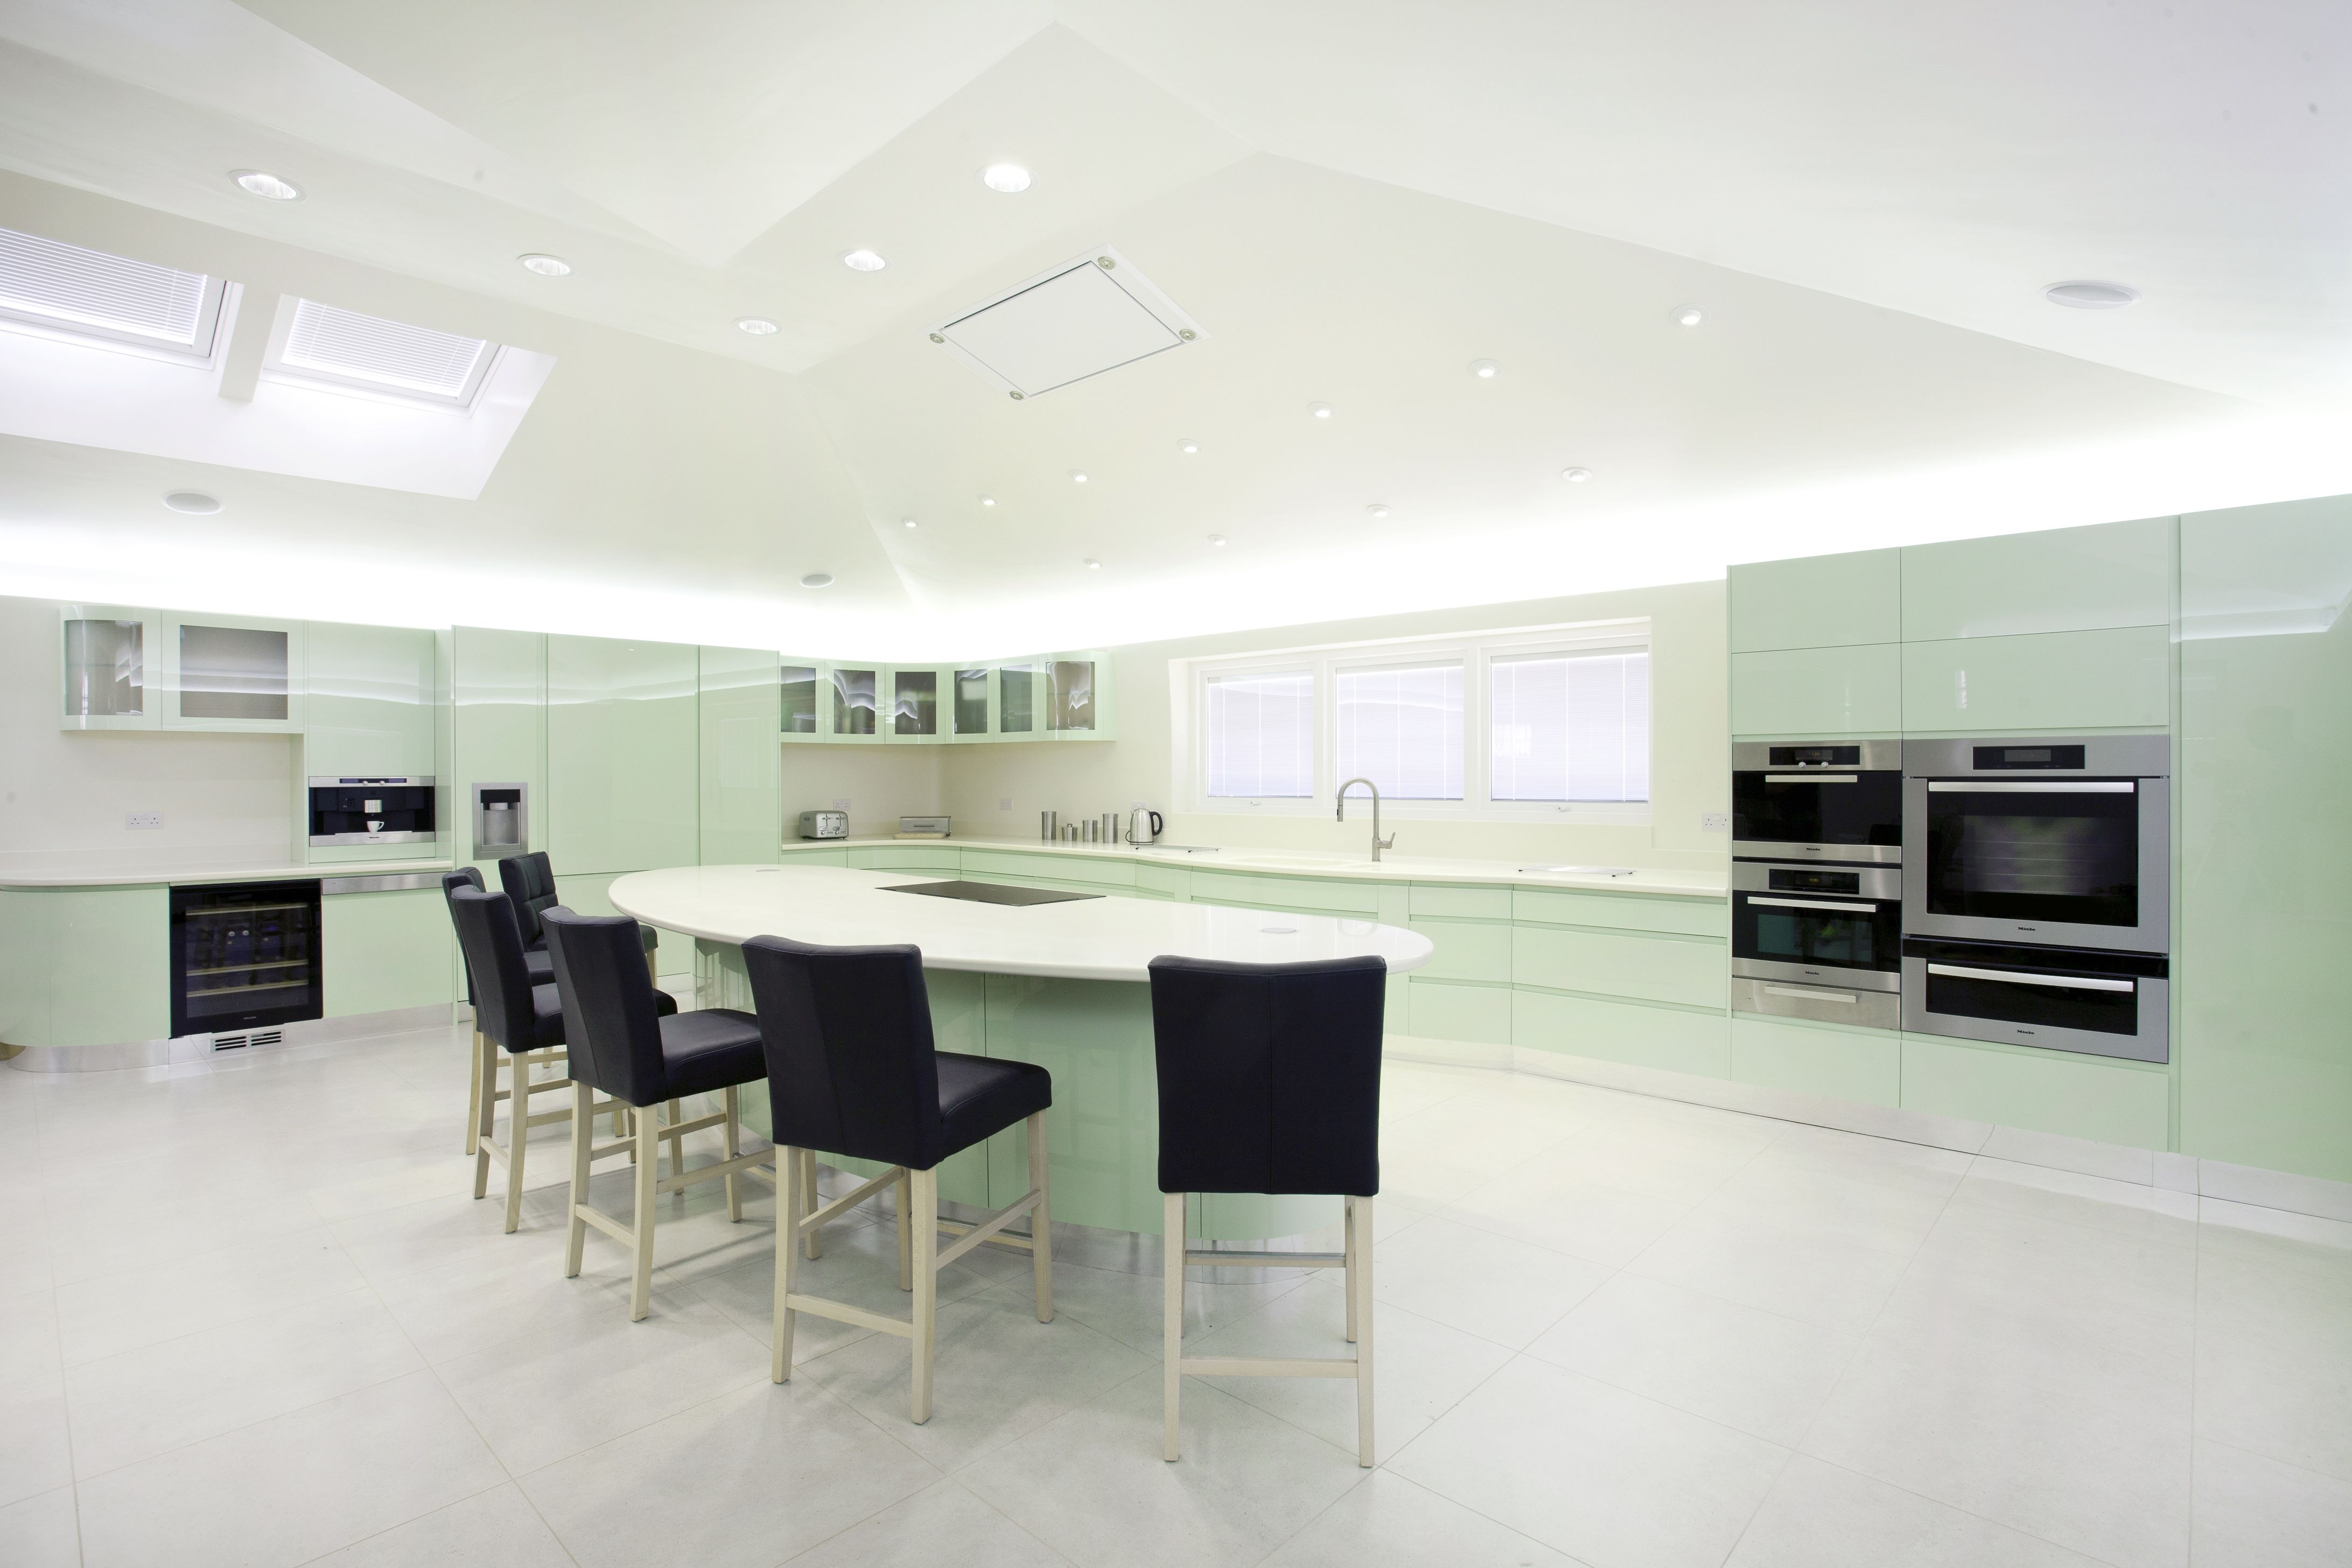 mint green parapan used to create this state of the art kitchen by osborne of ilkeston www